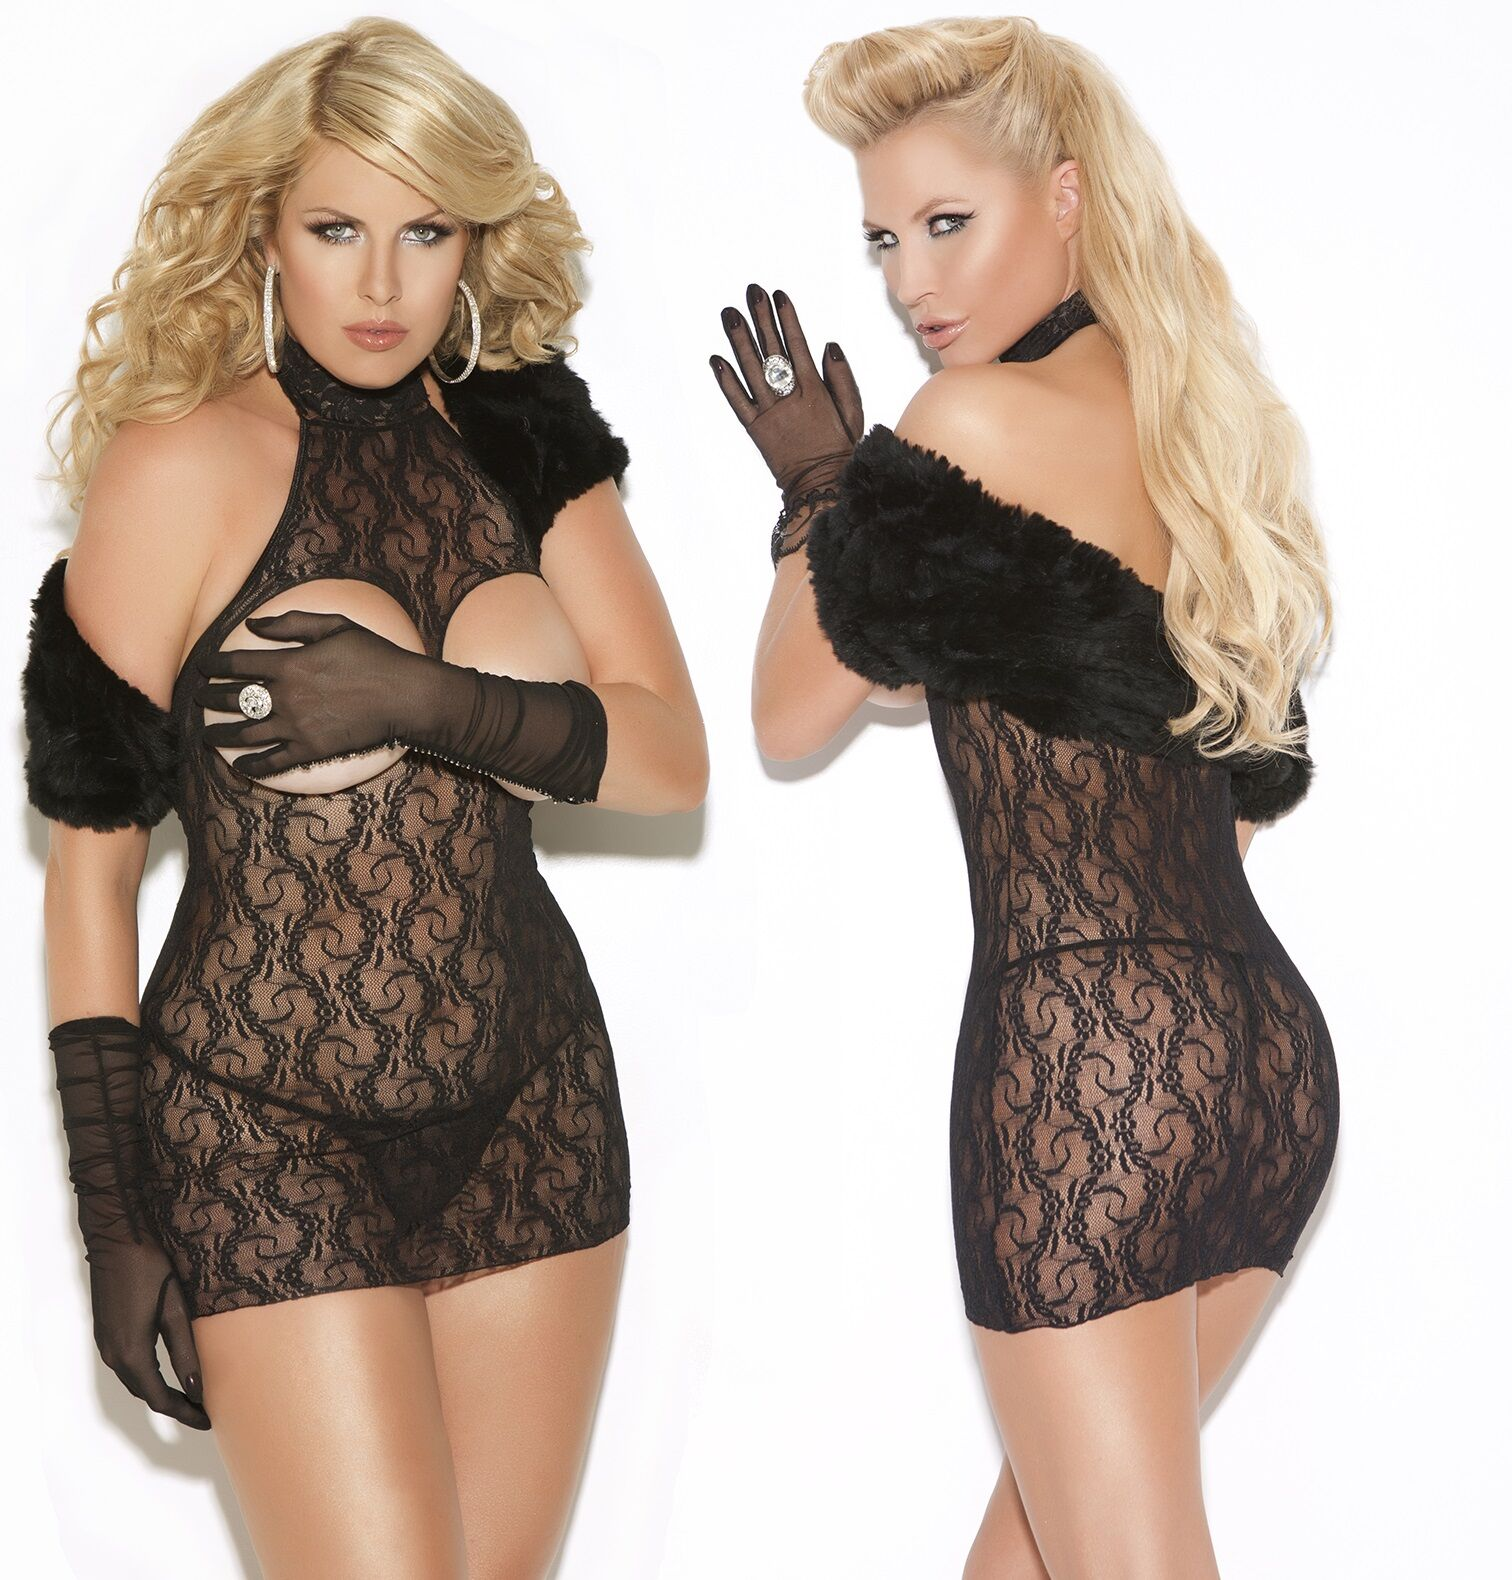 Black Cupless Floral Lace Mini Dress